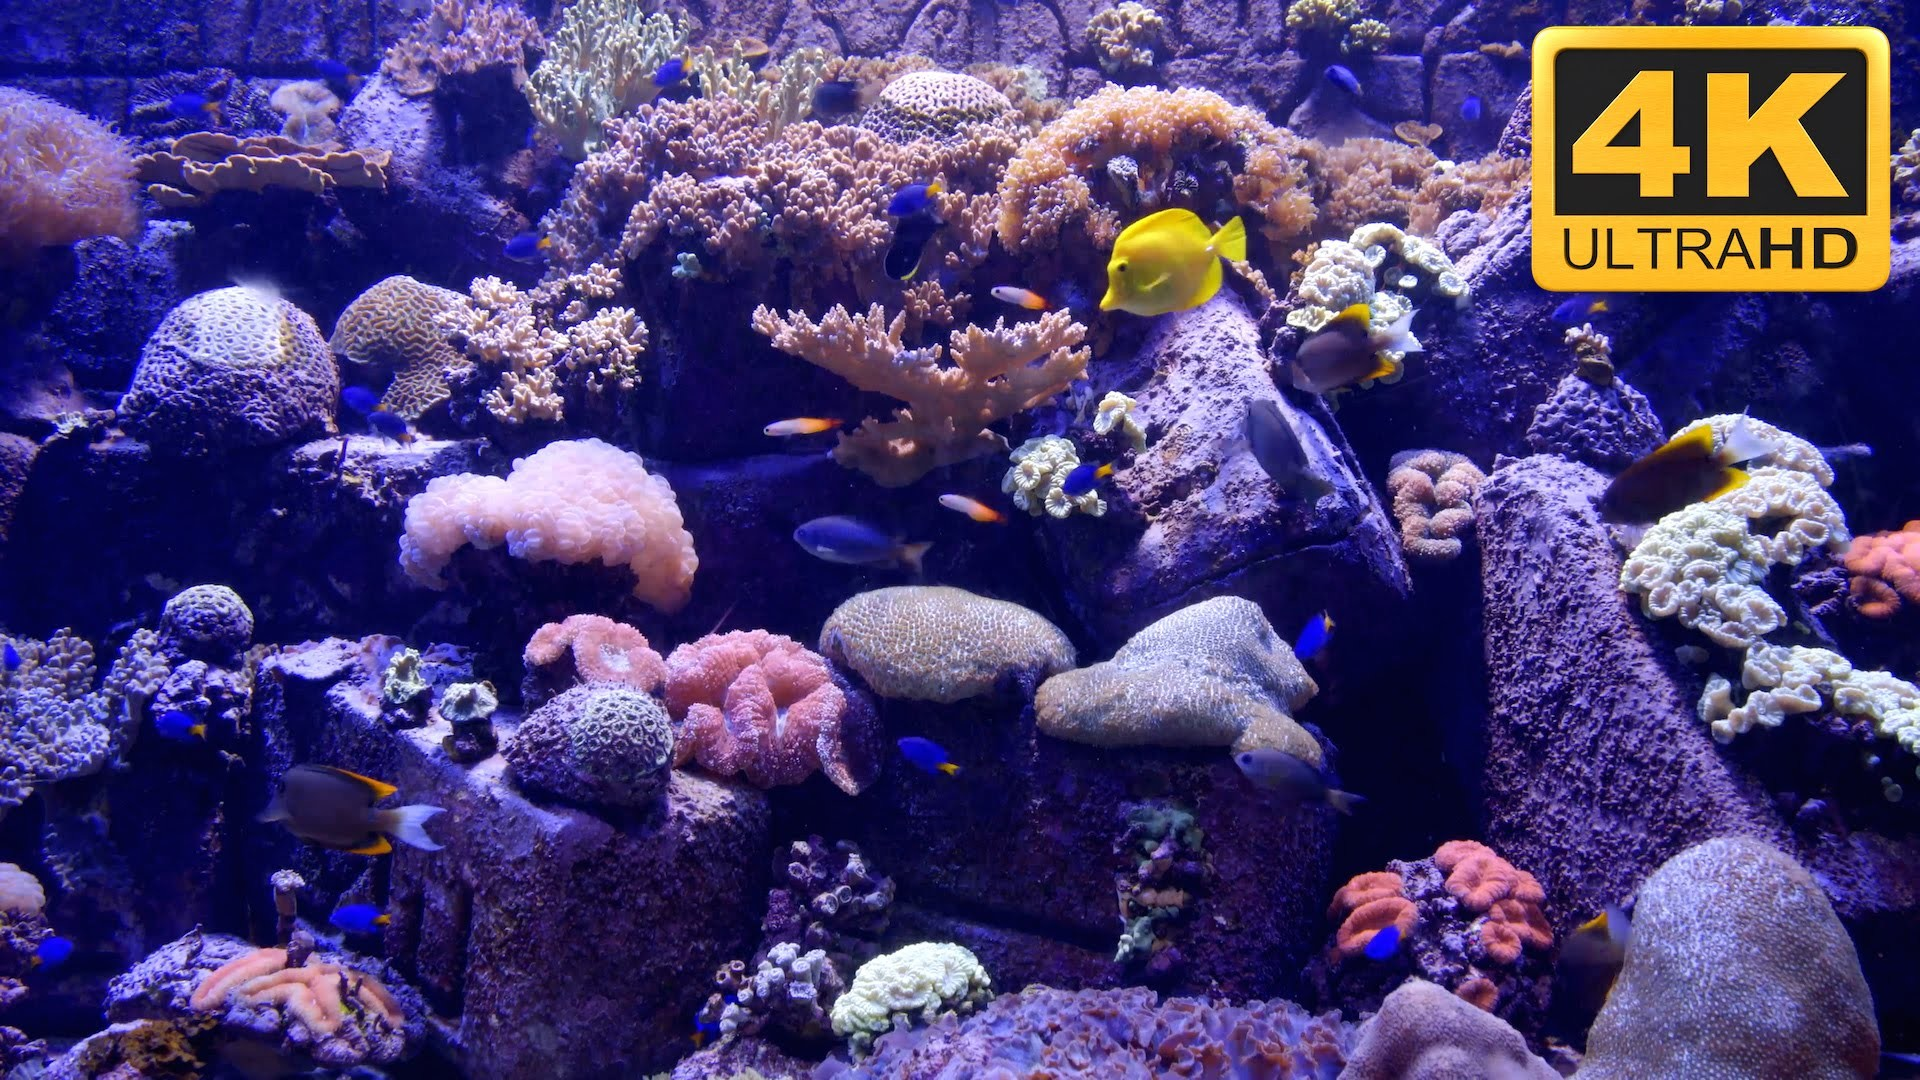 1920x1080 Full Size of Fish Tank 4kum Screensaver And Tv Wallpaper Youtube  Maxresdefault Crawler Free Downloadaquarium Download ...